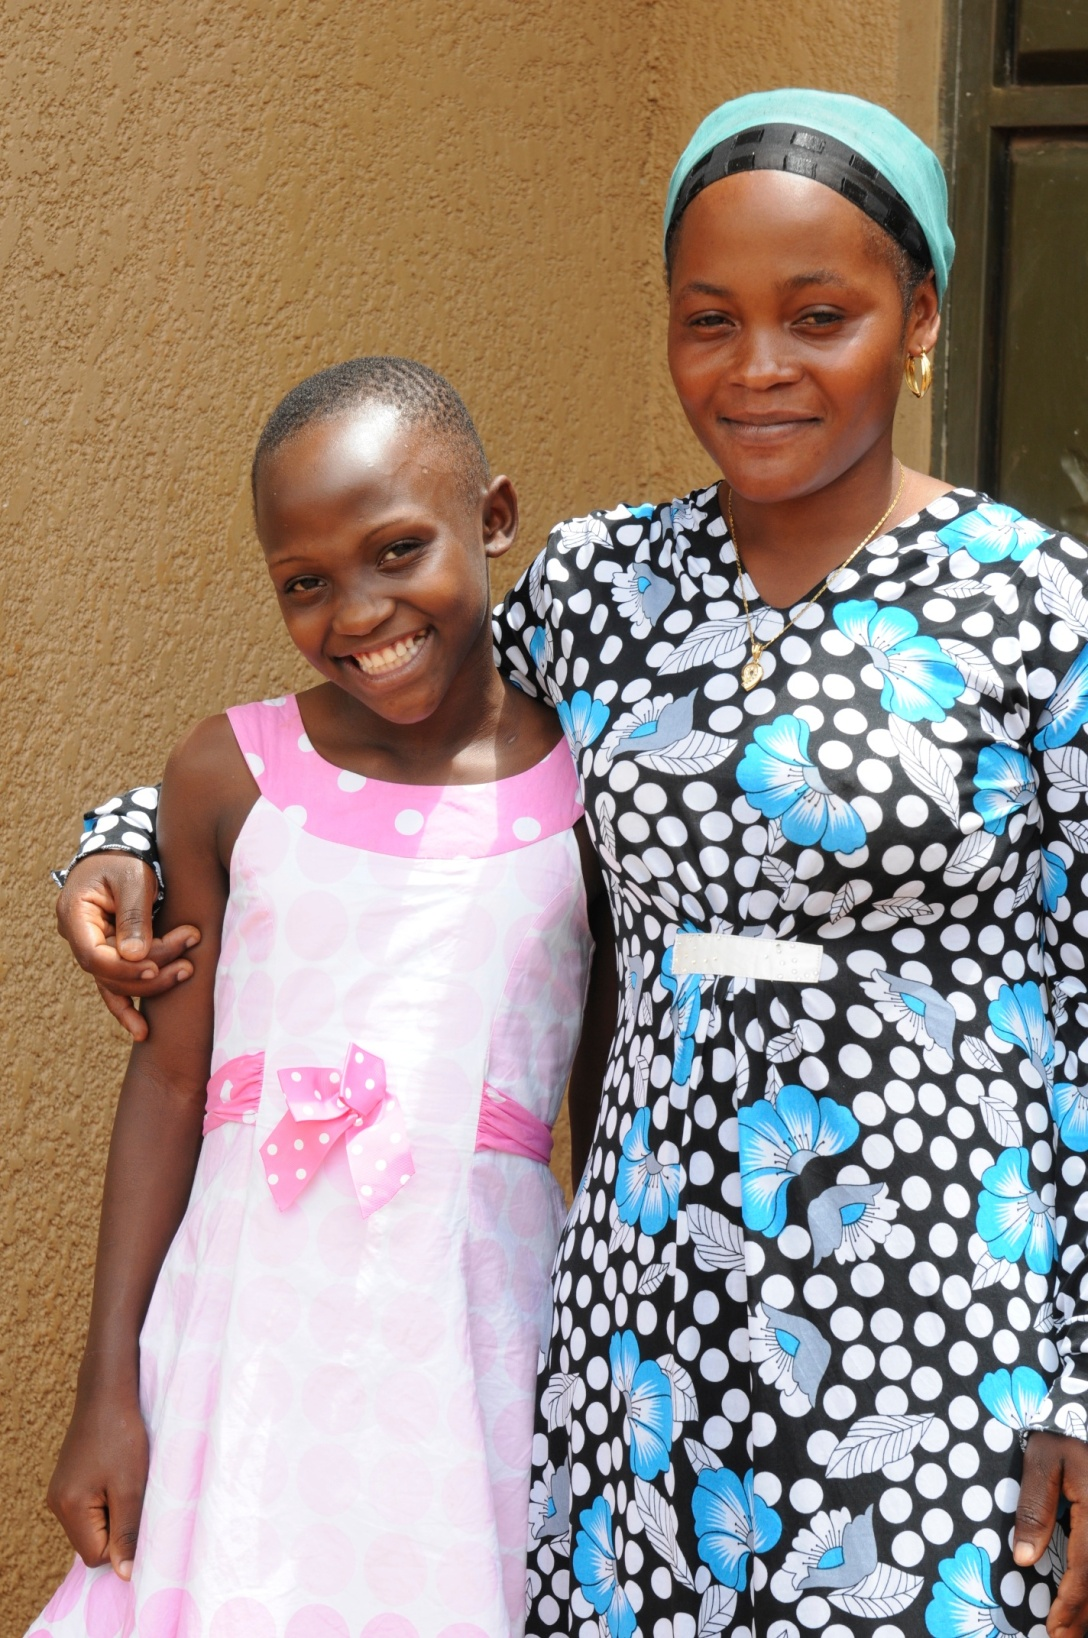 Victoria with her big sister who raises her two younger siblings and several children of her own by herself. Jack now sponsors their brother to go to school.